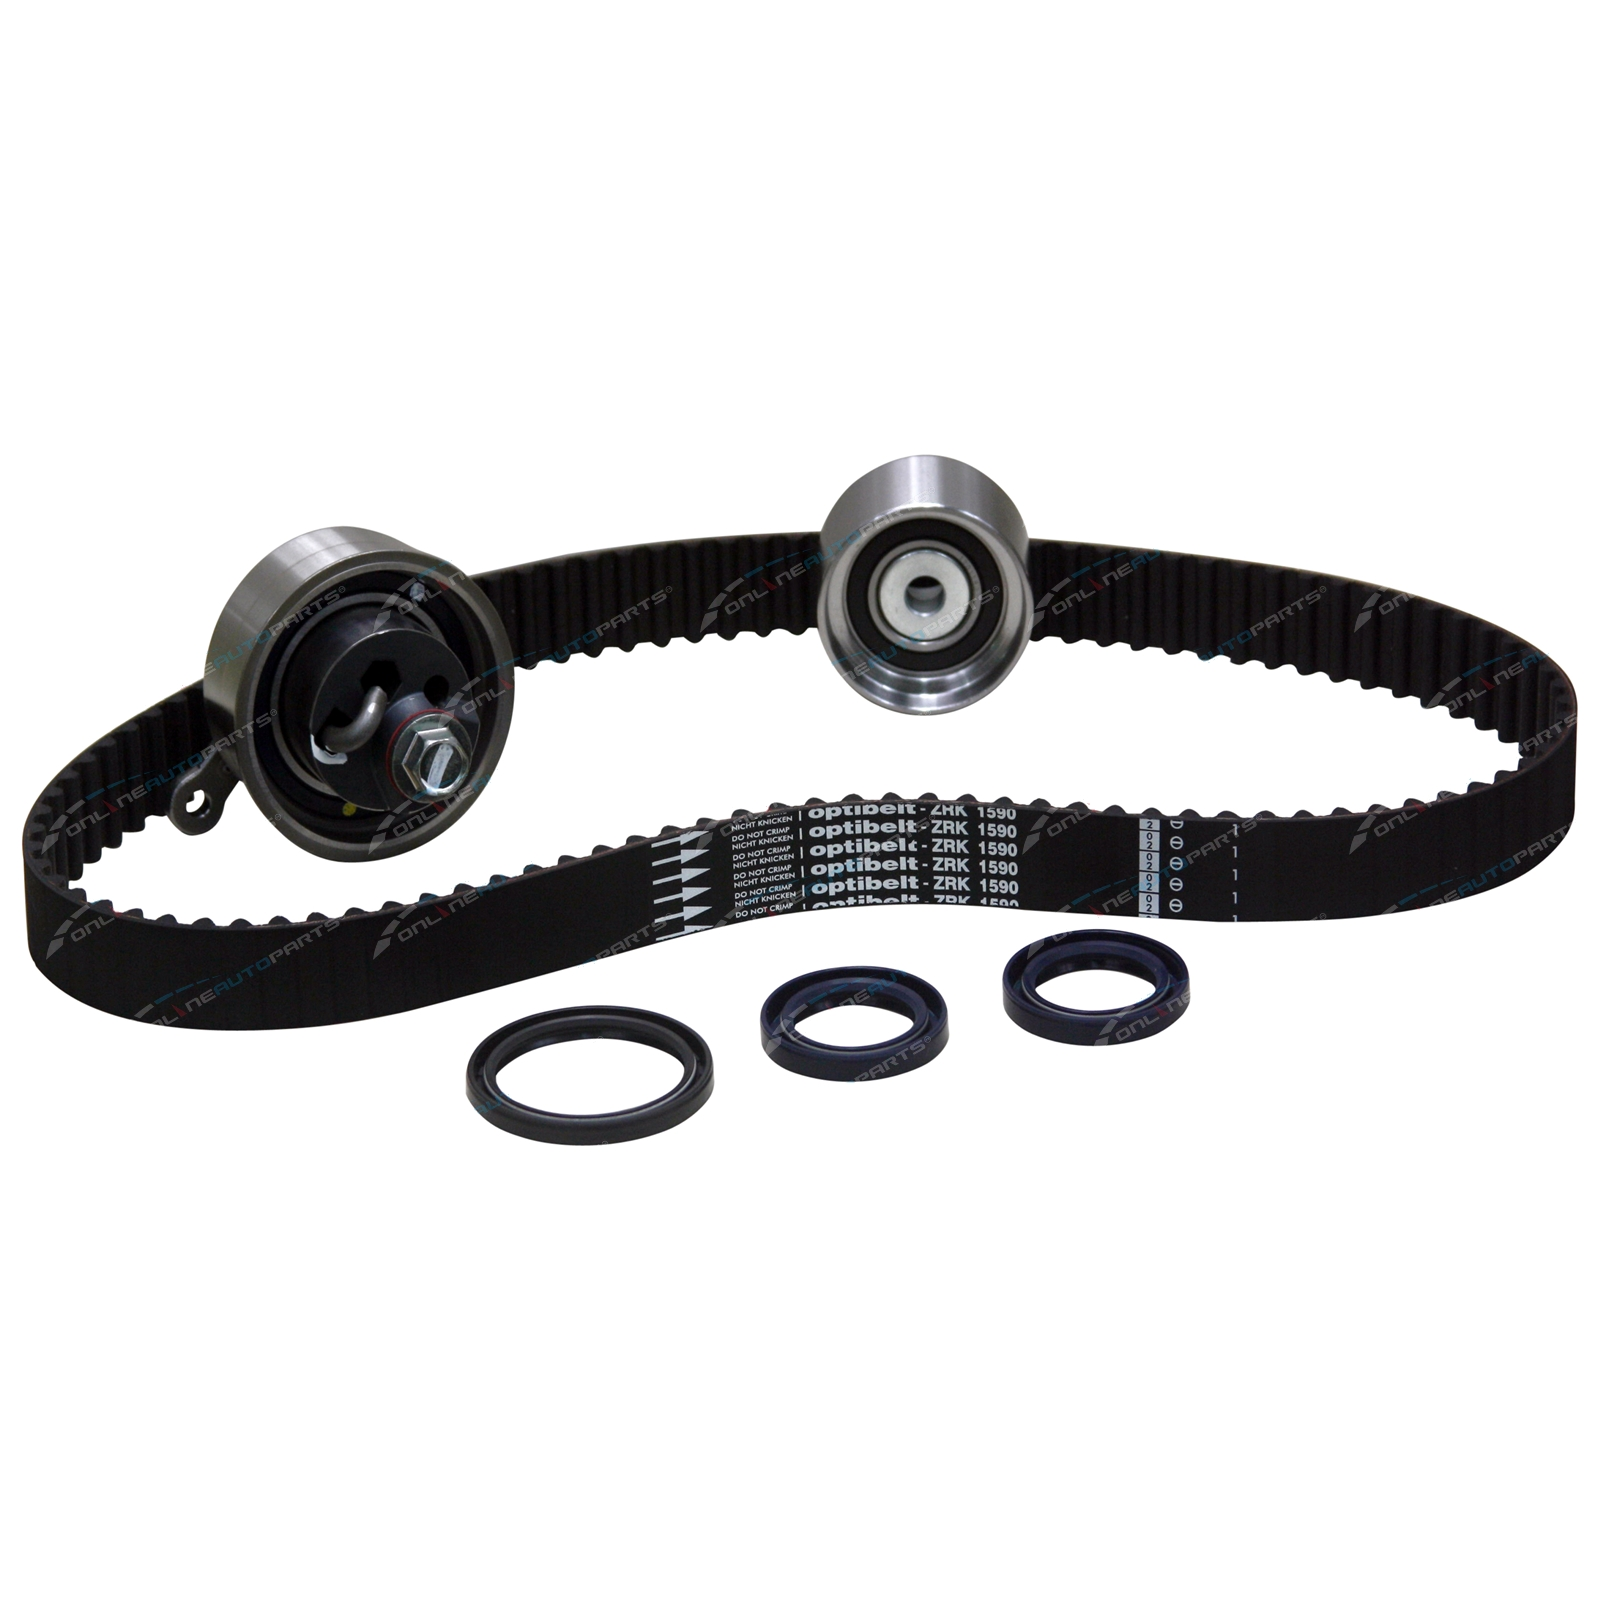 What are some durable replacement timing belts for Mazda?